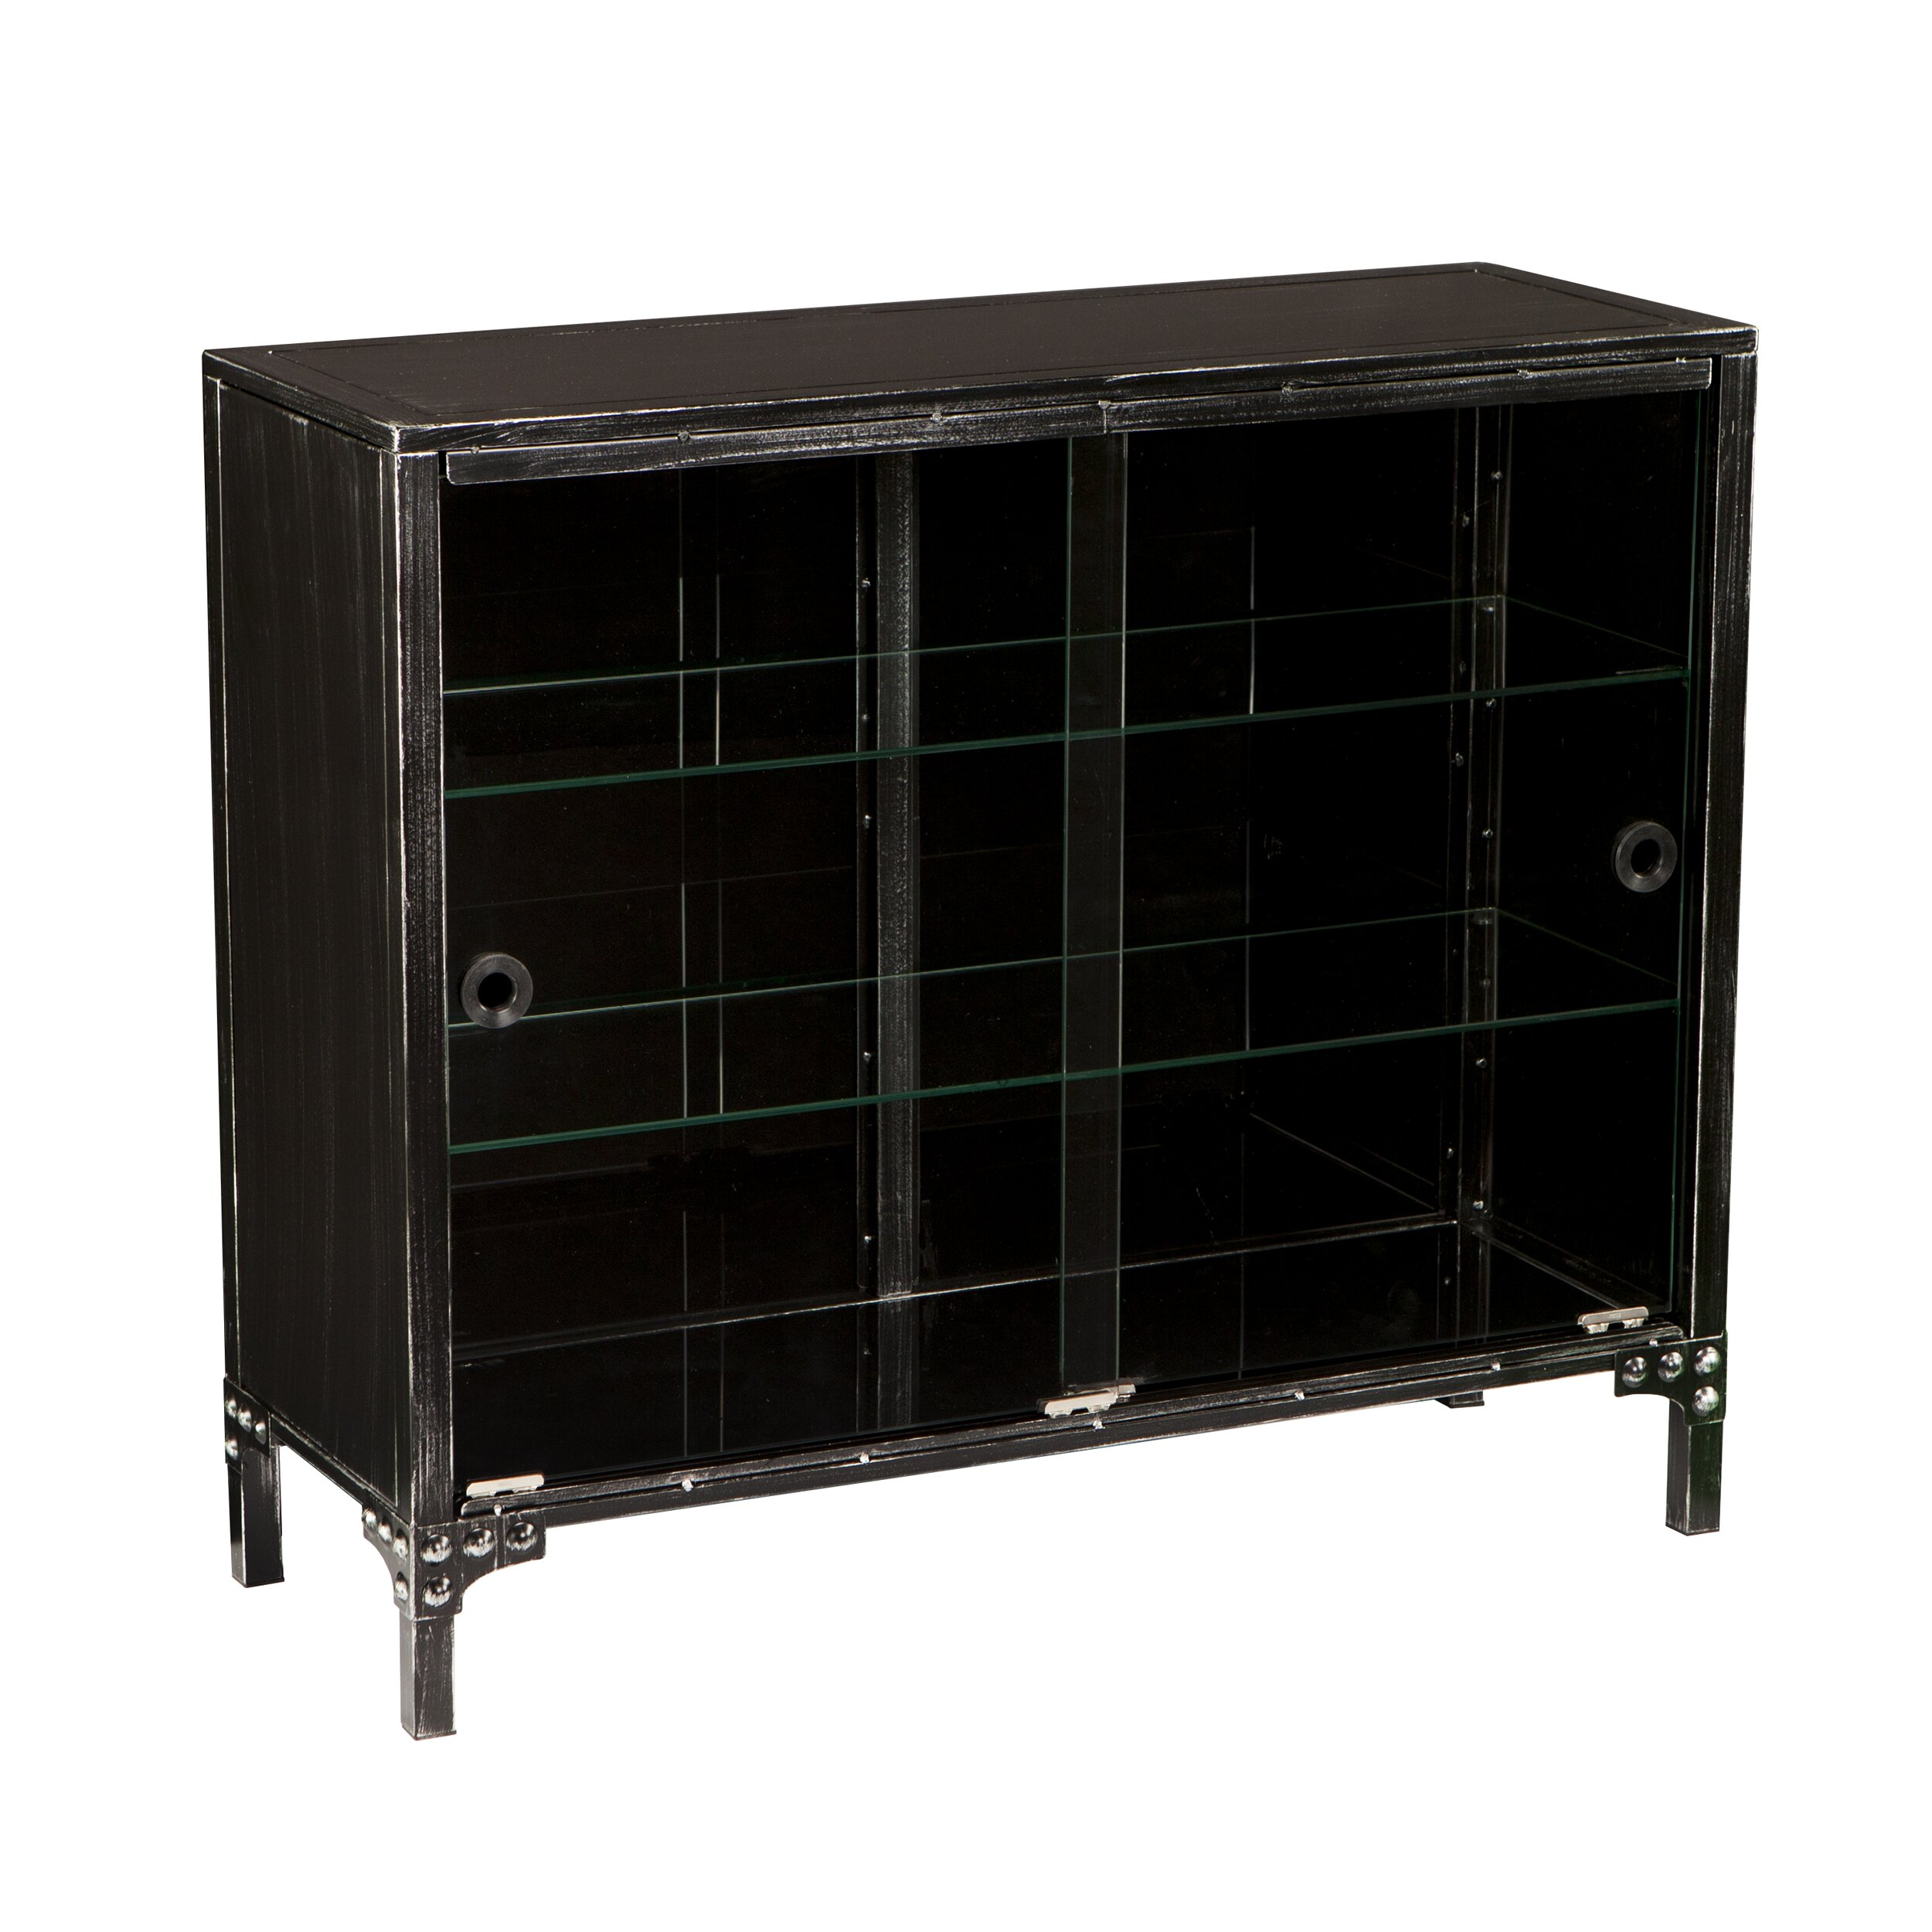 Sliding Door Dvd Cabinet Rustic Cabinets Chests Youll Love Wayfair